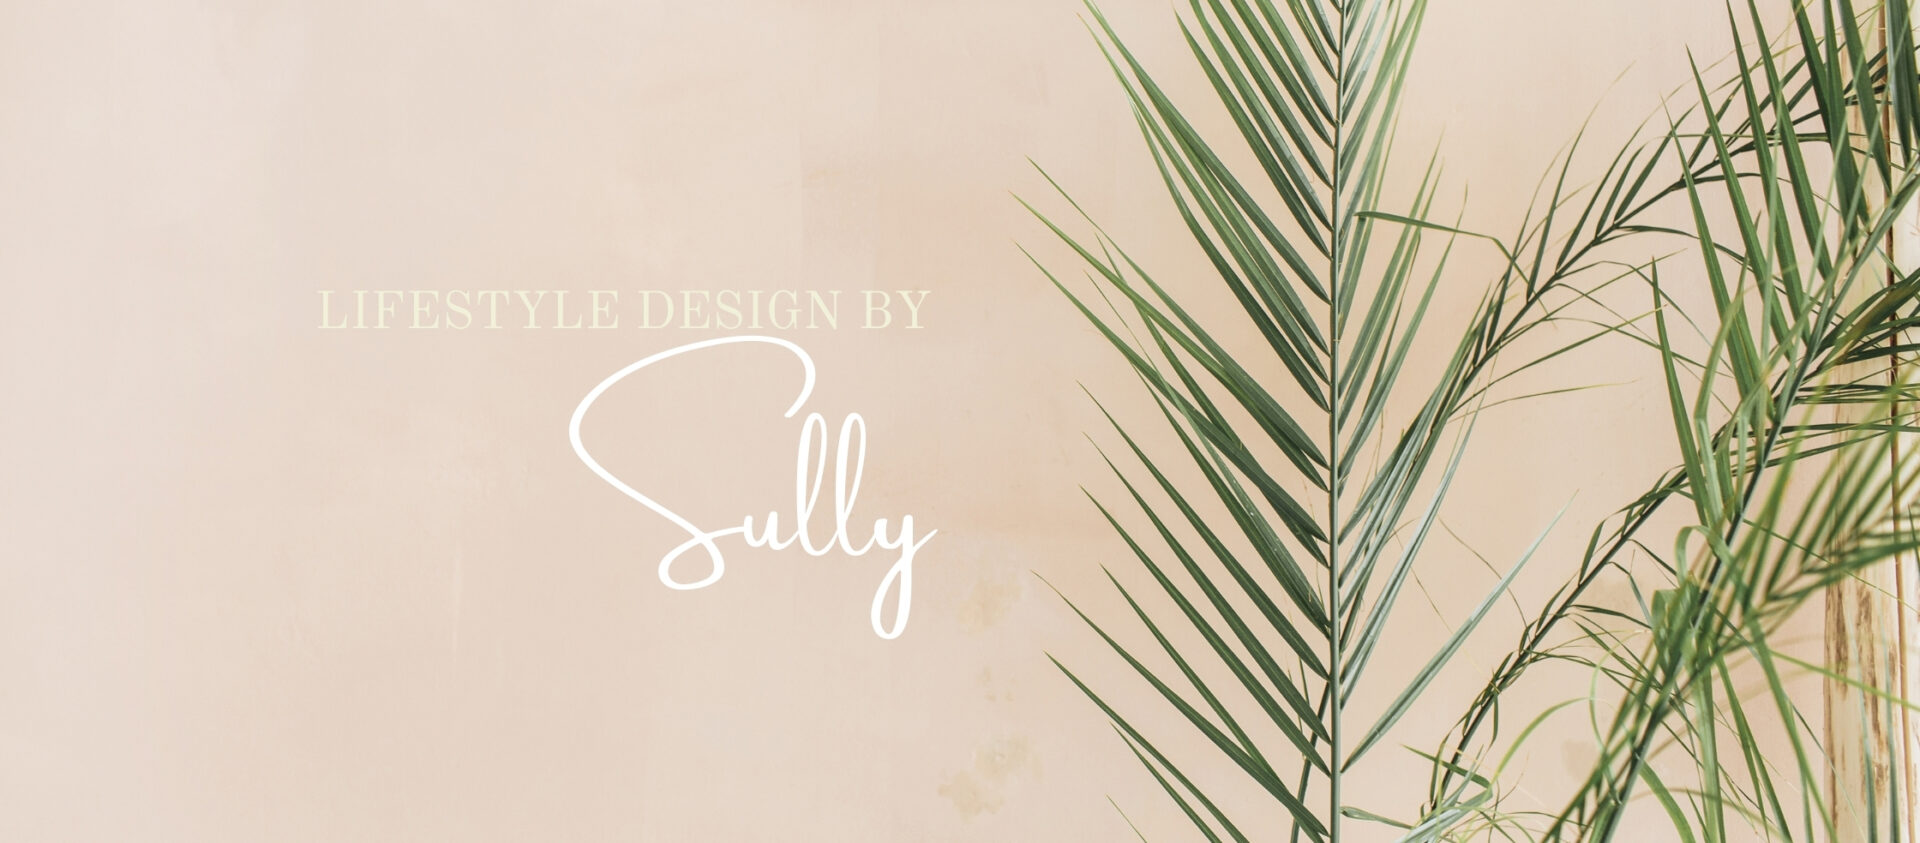 Lifestyle Design by Sully